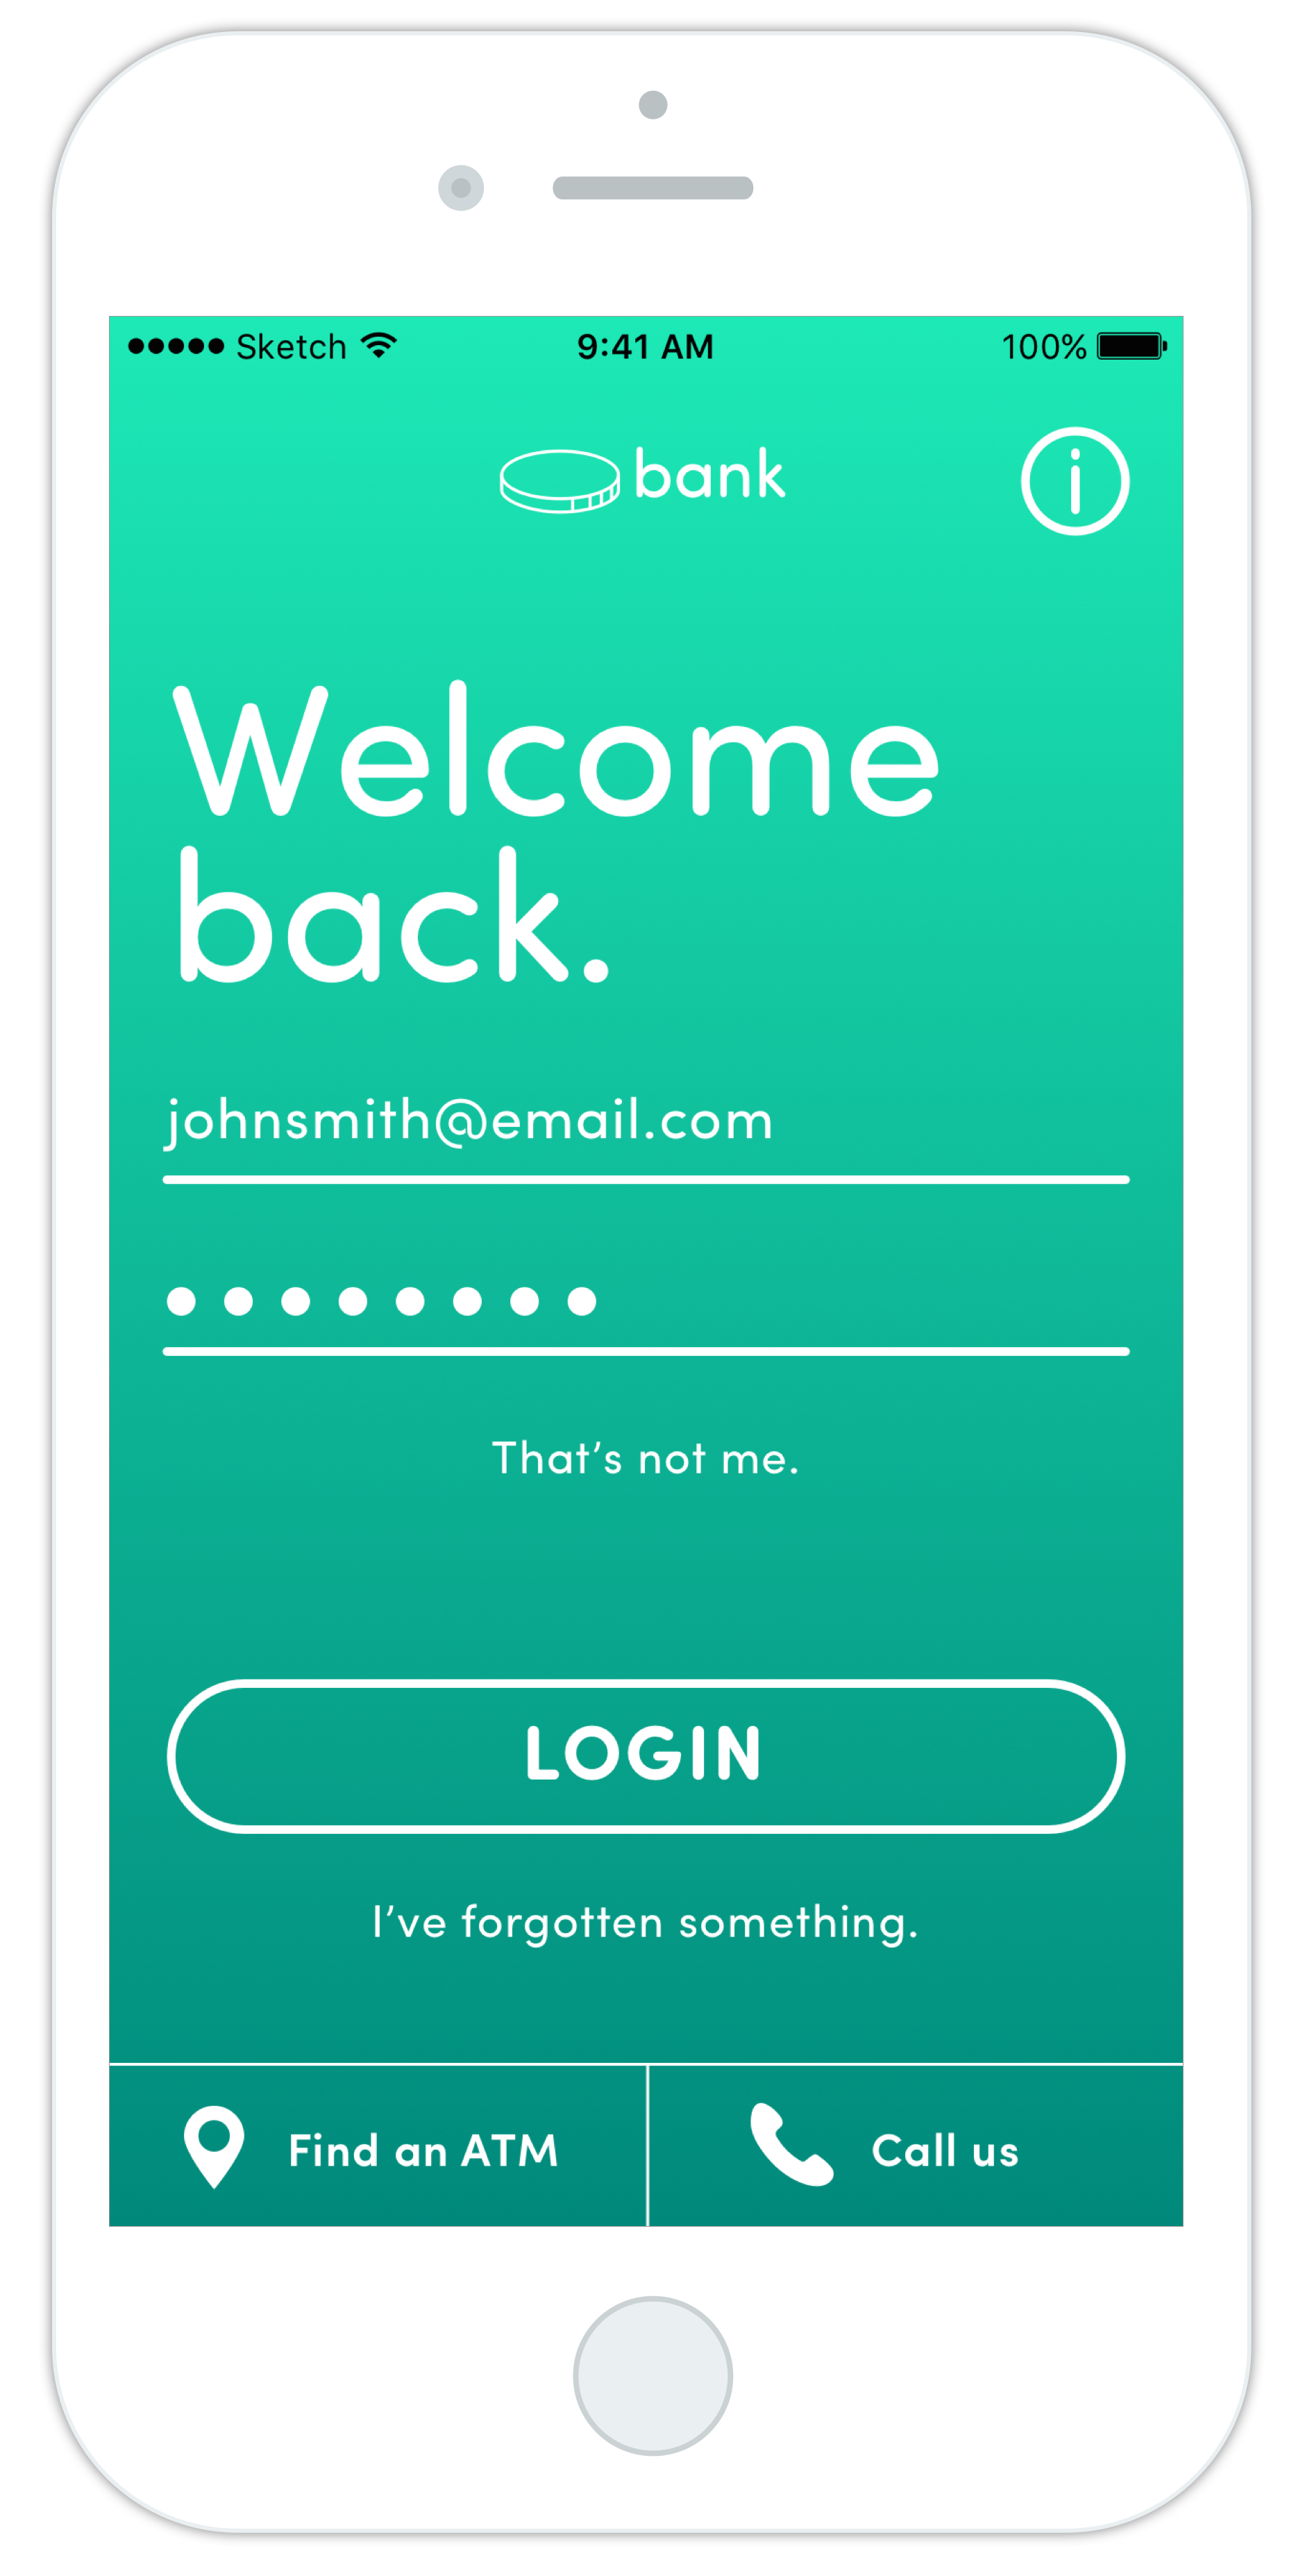 Banking App Redesign - Welcome